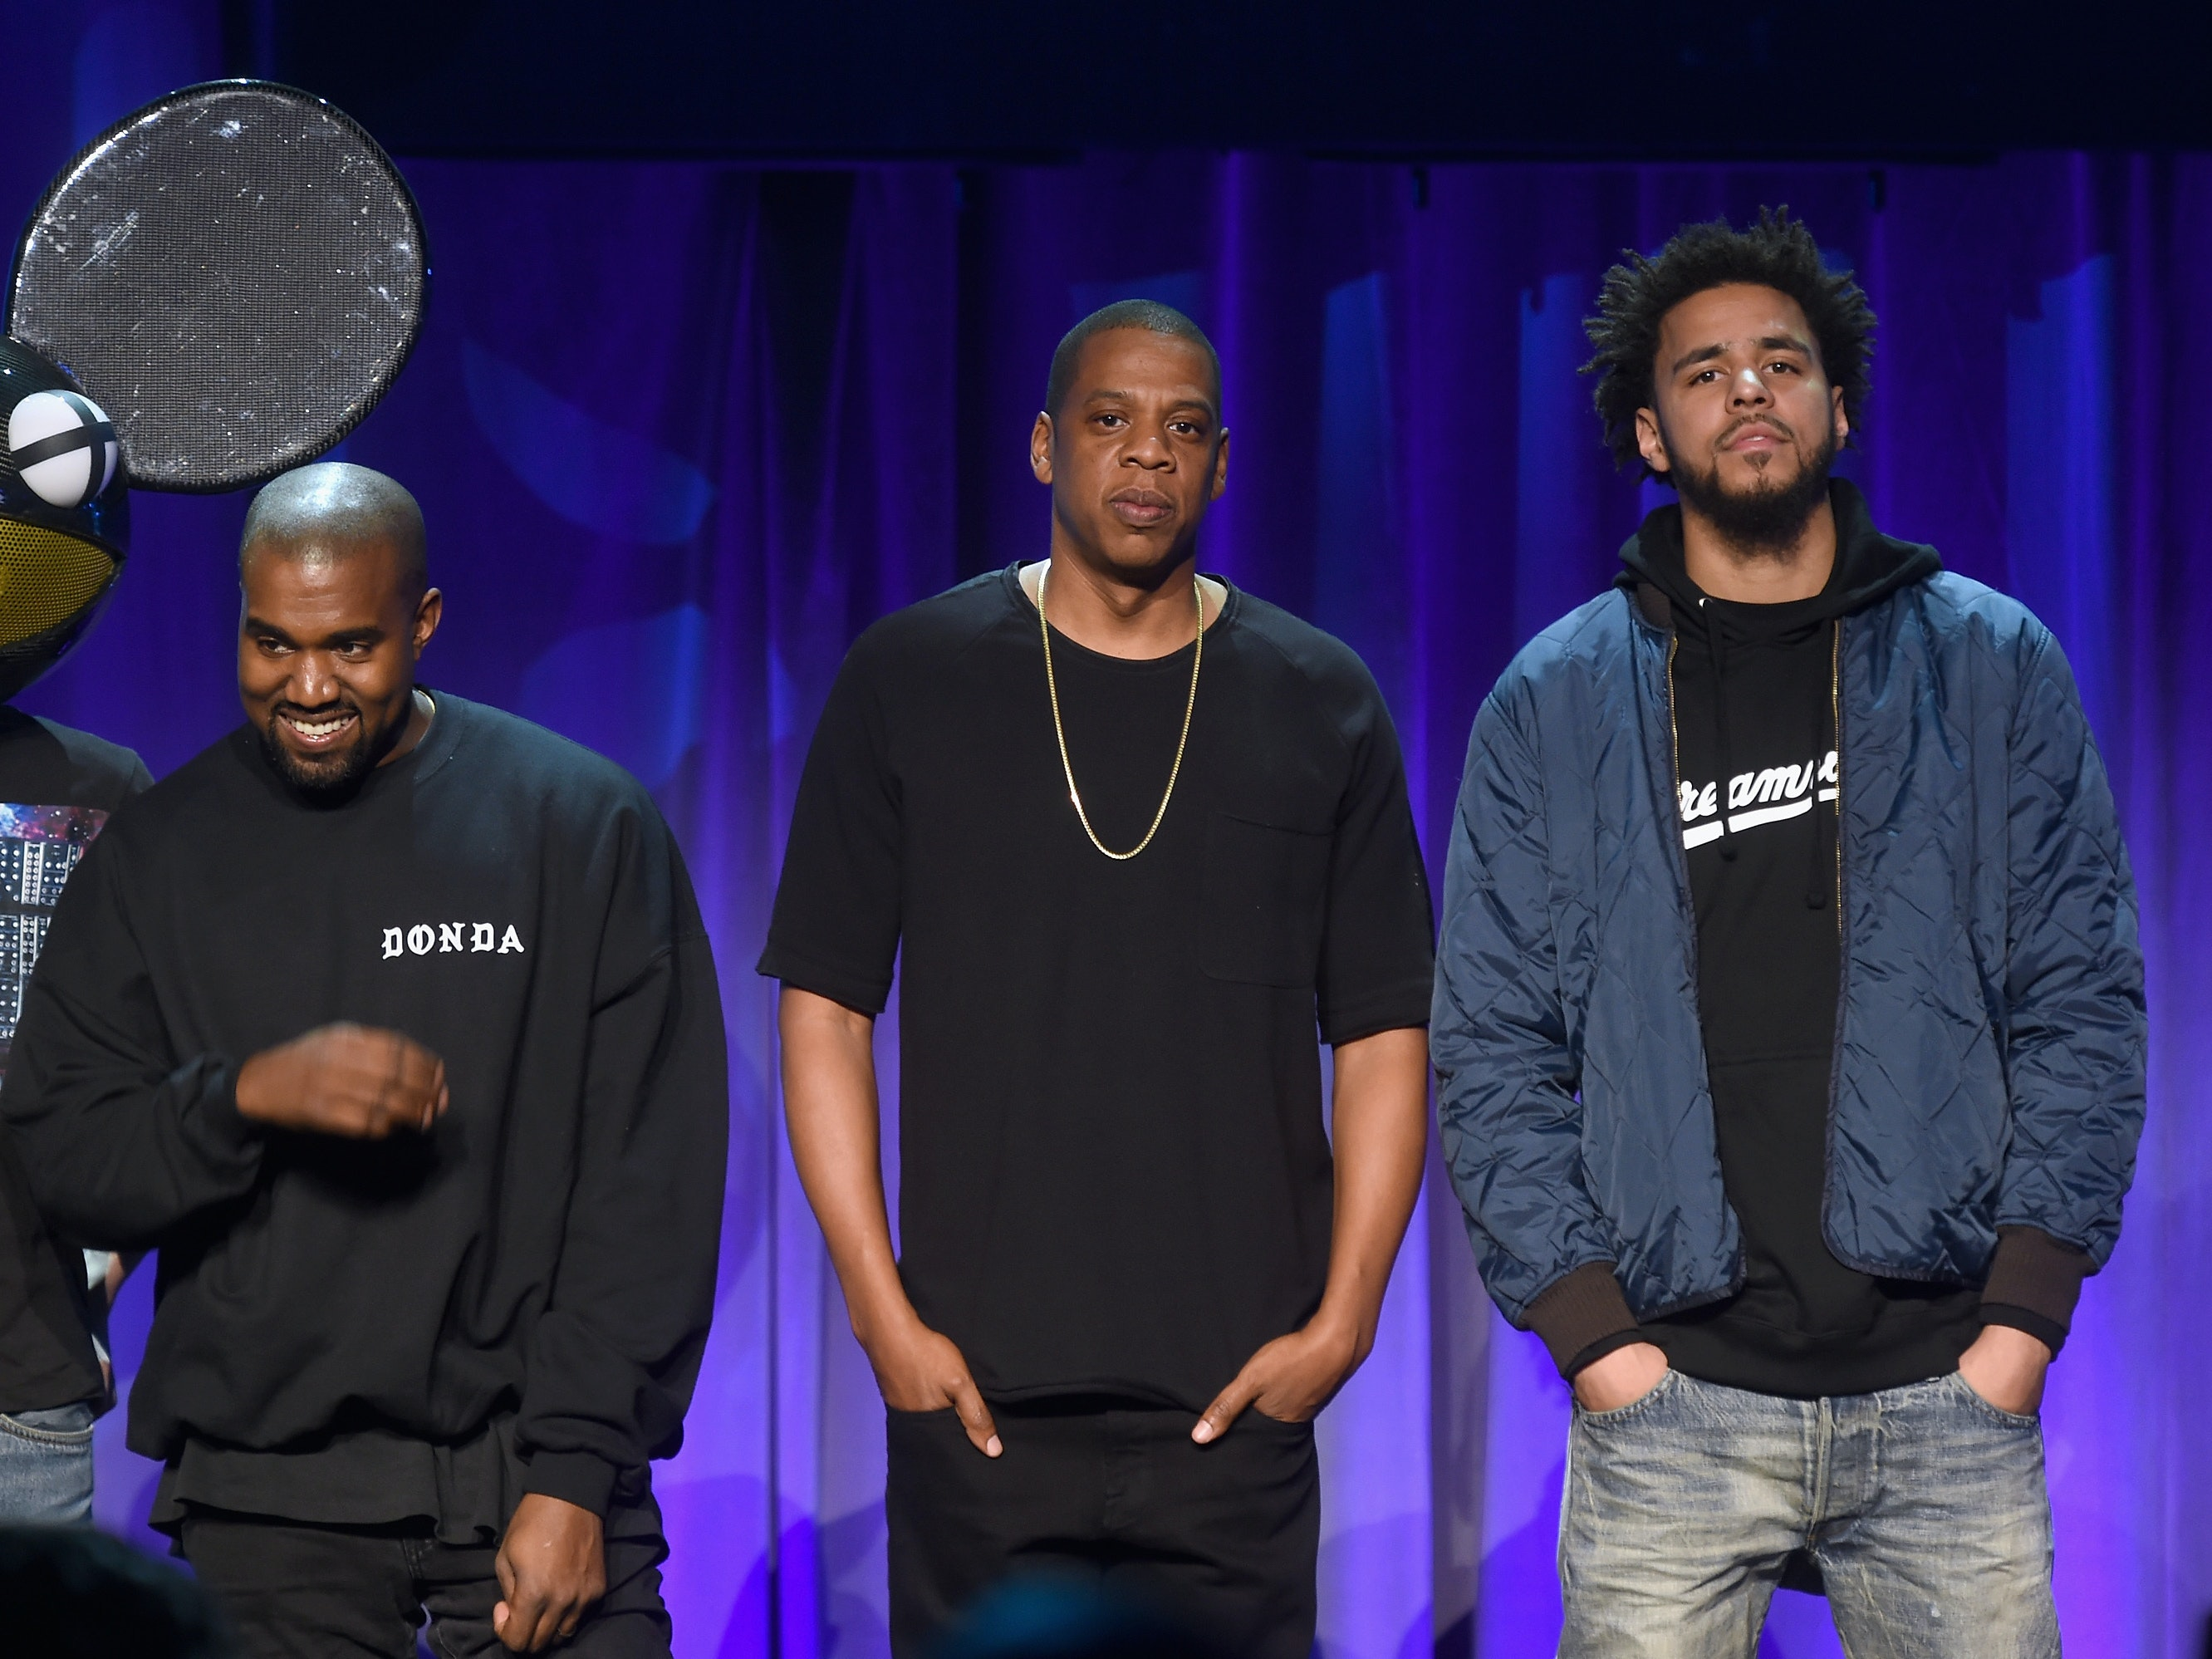 No, Idiots, J. Cole Isn't Dissing Kanye, He's Analyzing